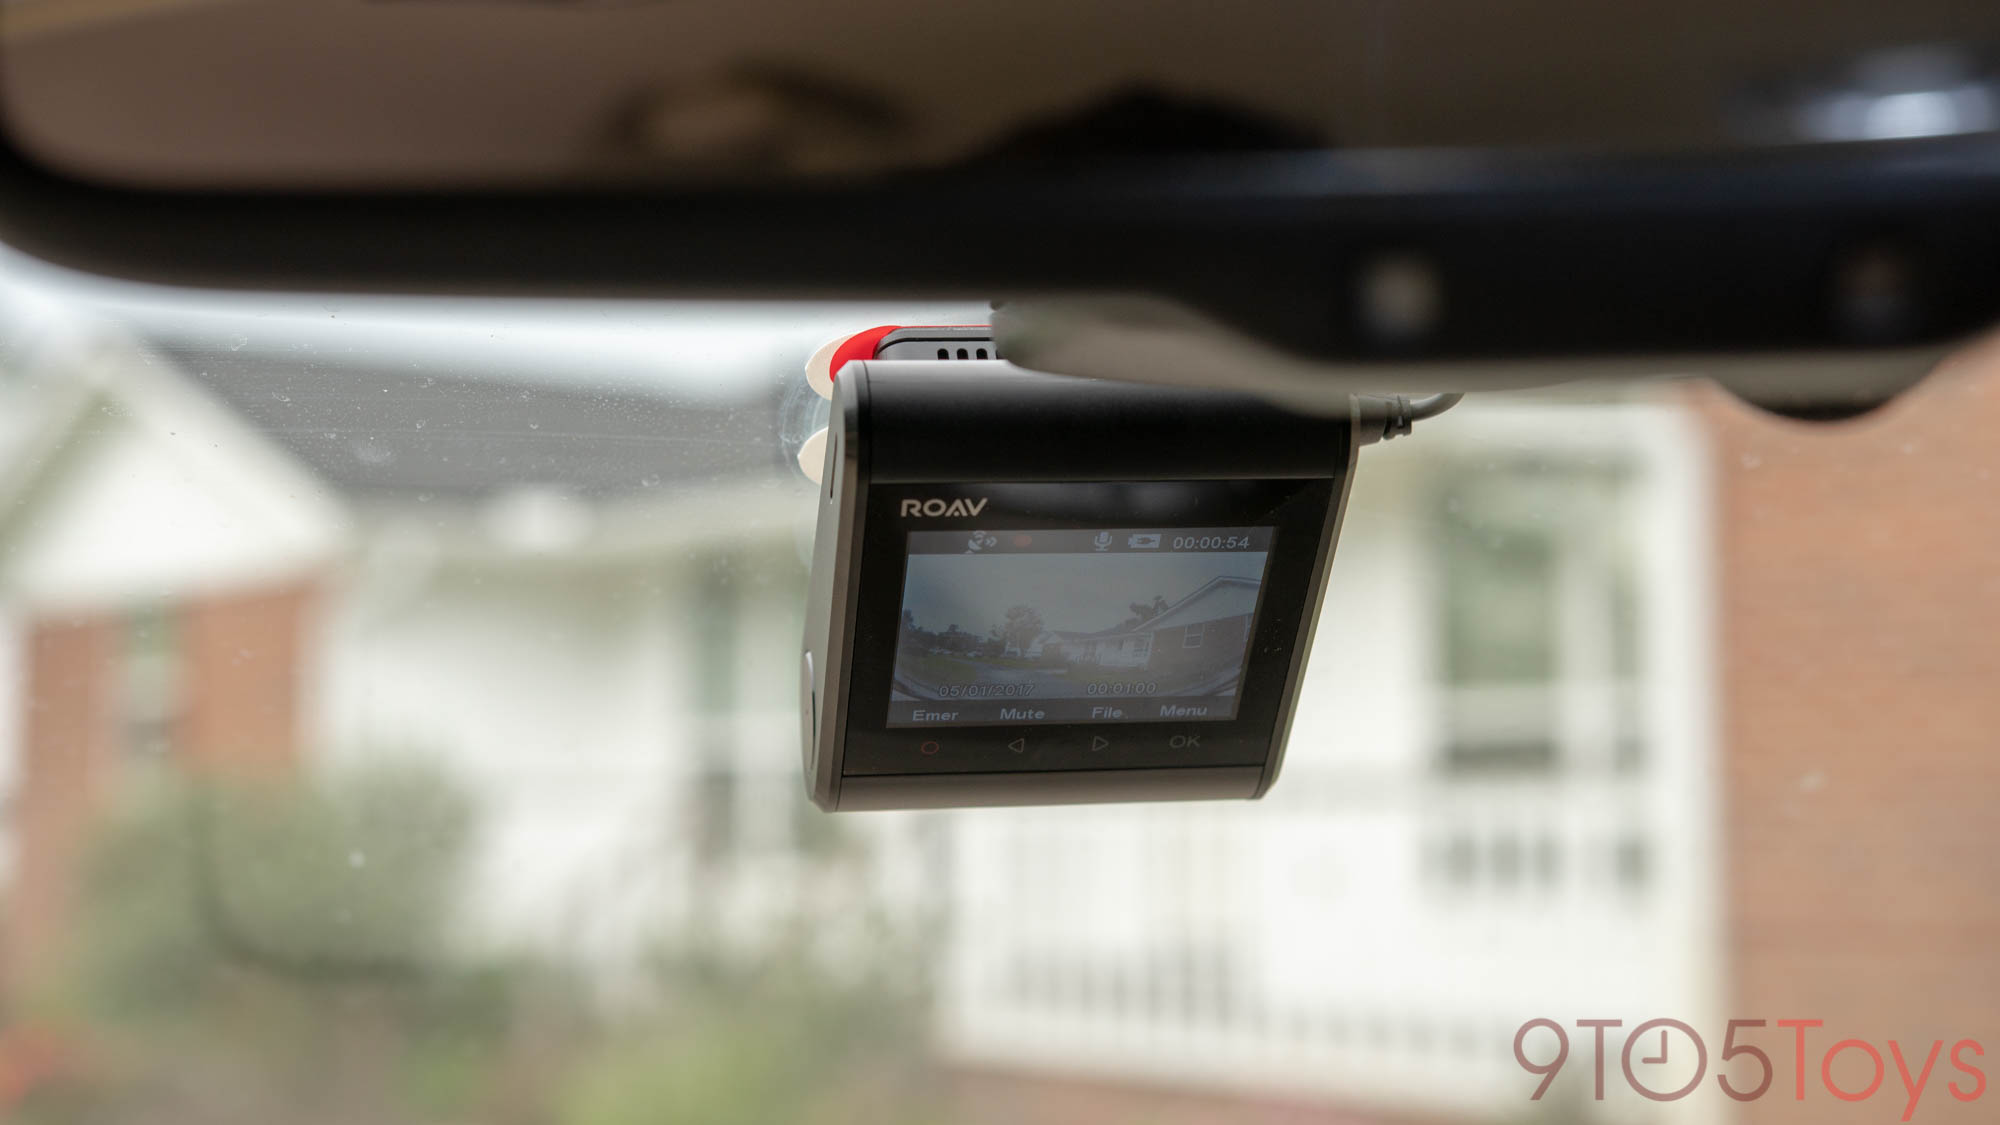 Which dash camera should you pick? These are the best options on the market